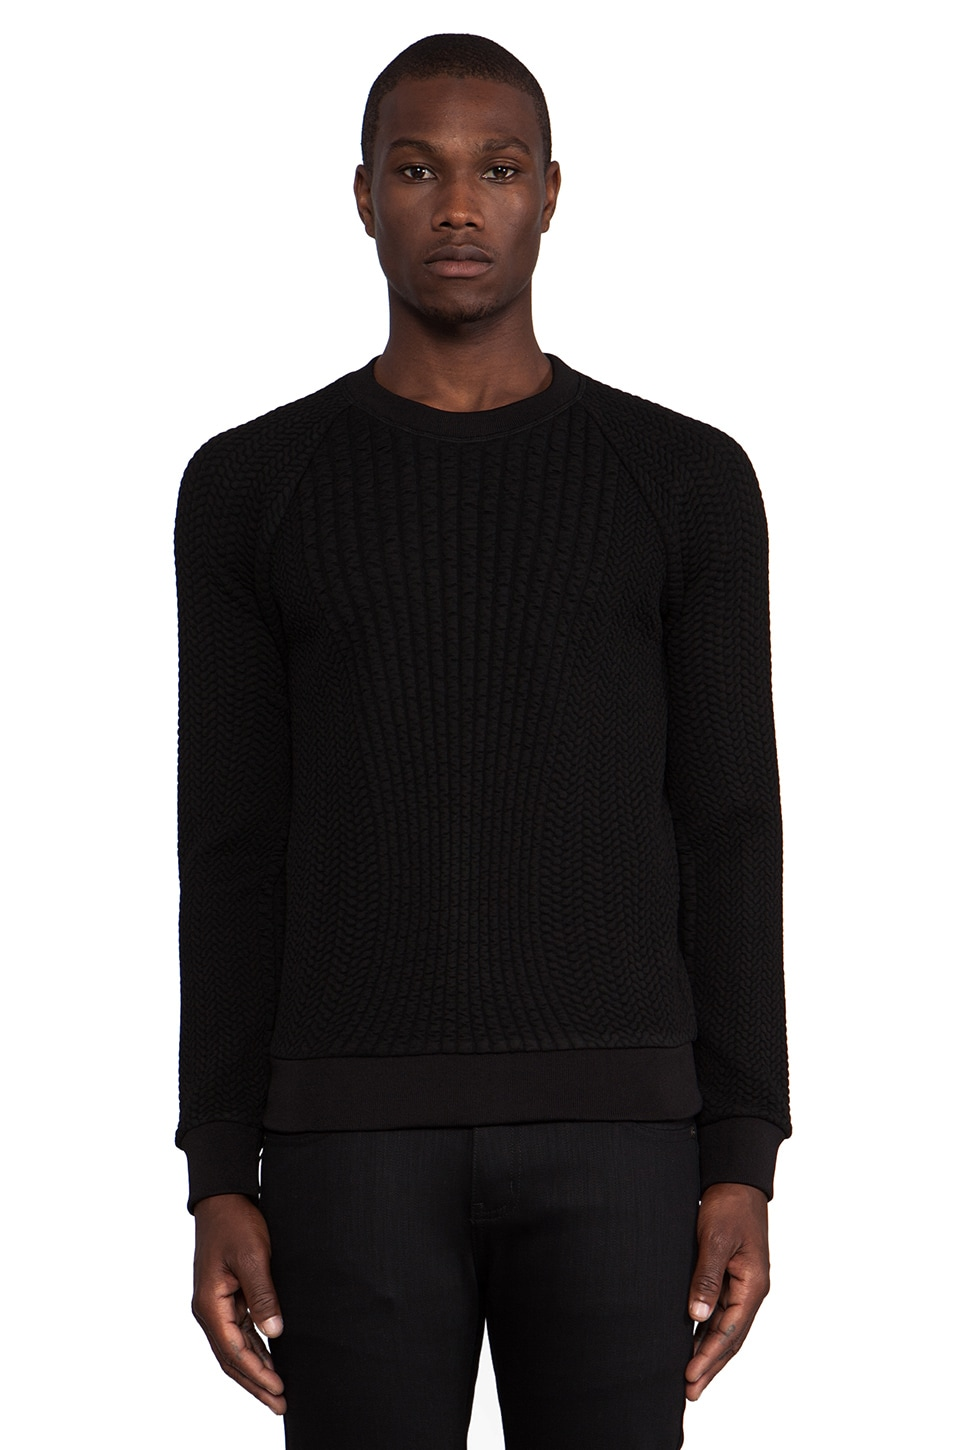 Theory 38 Tornt Sweater in Black